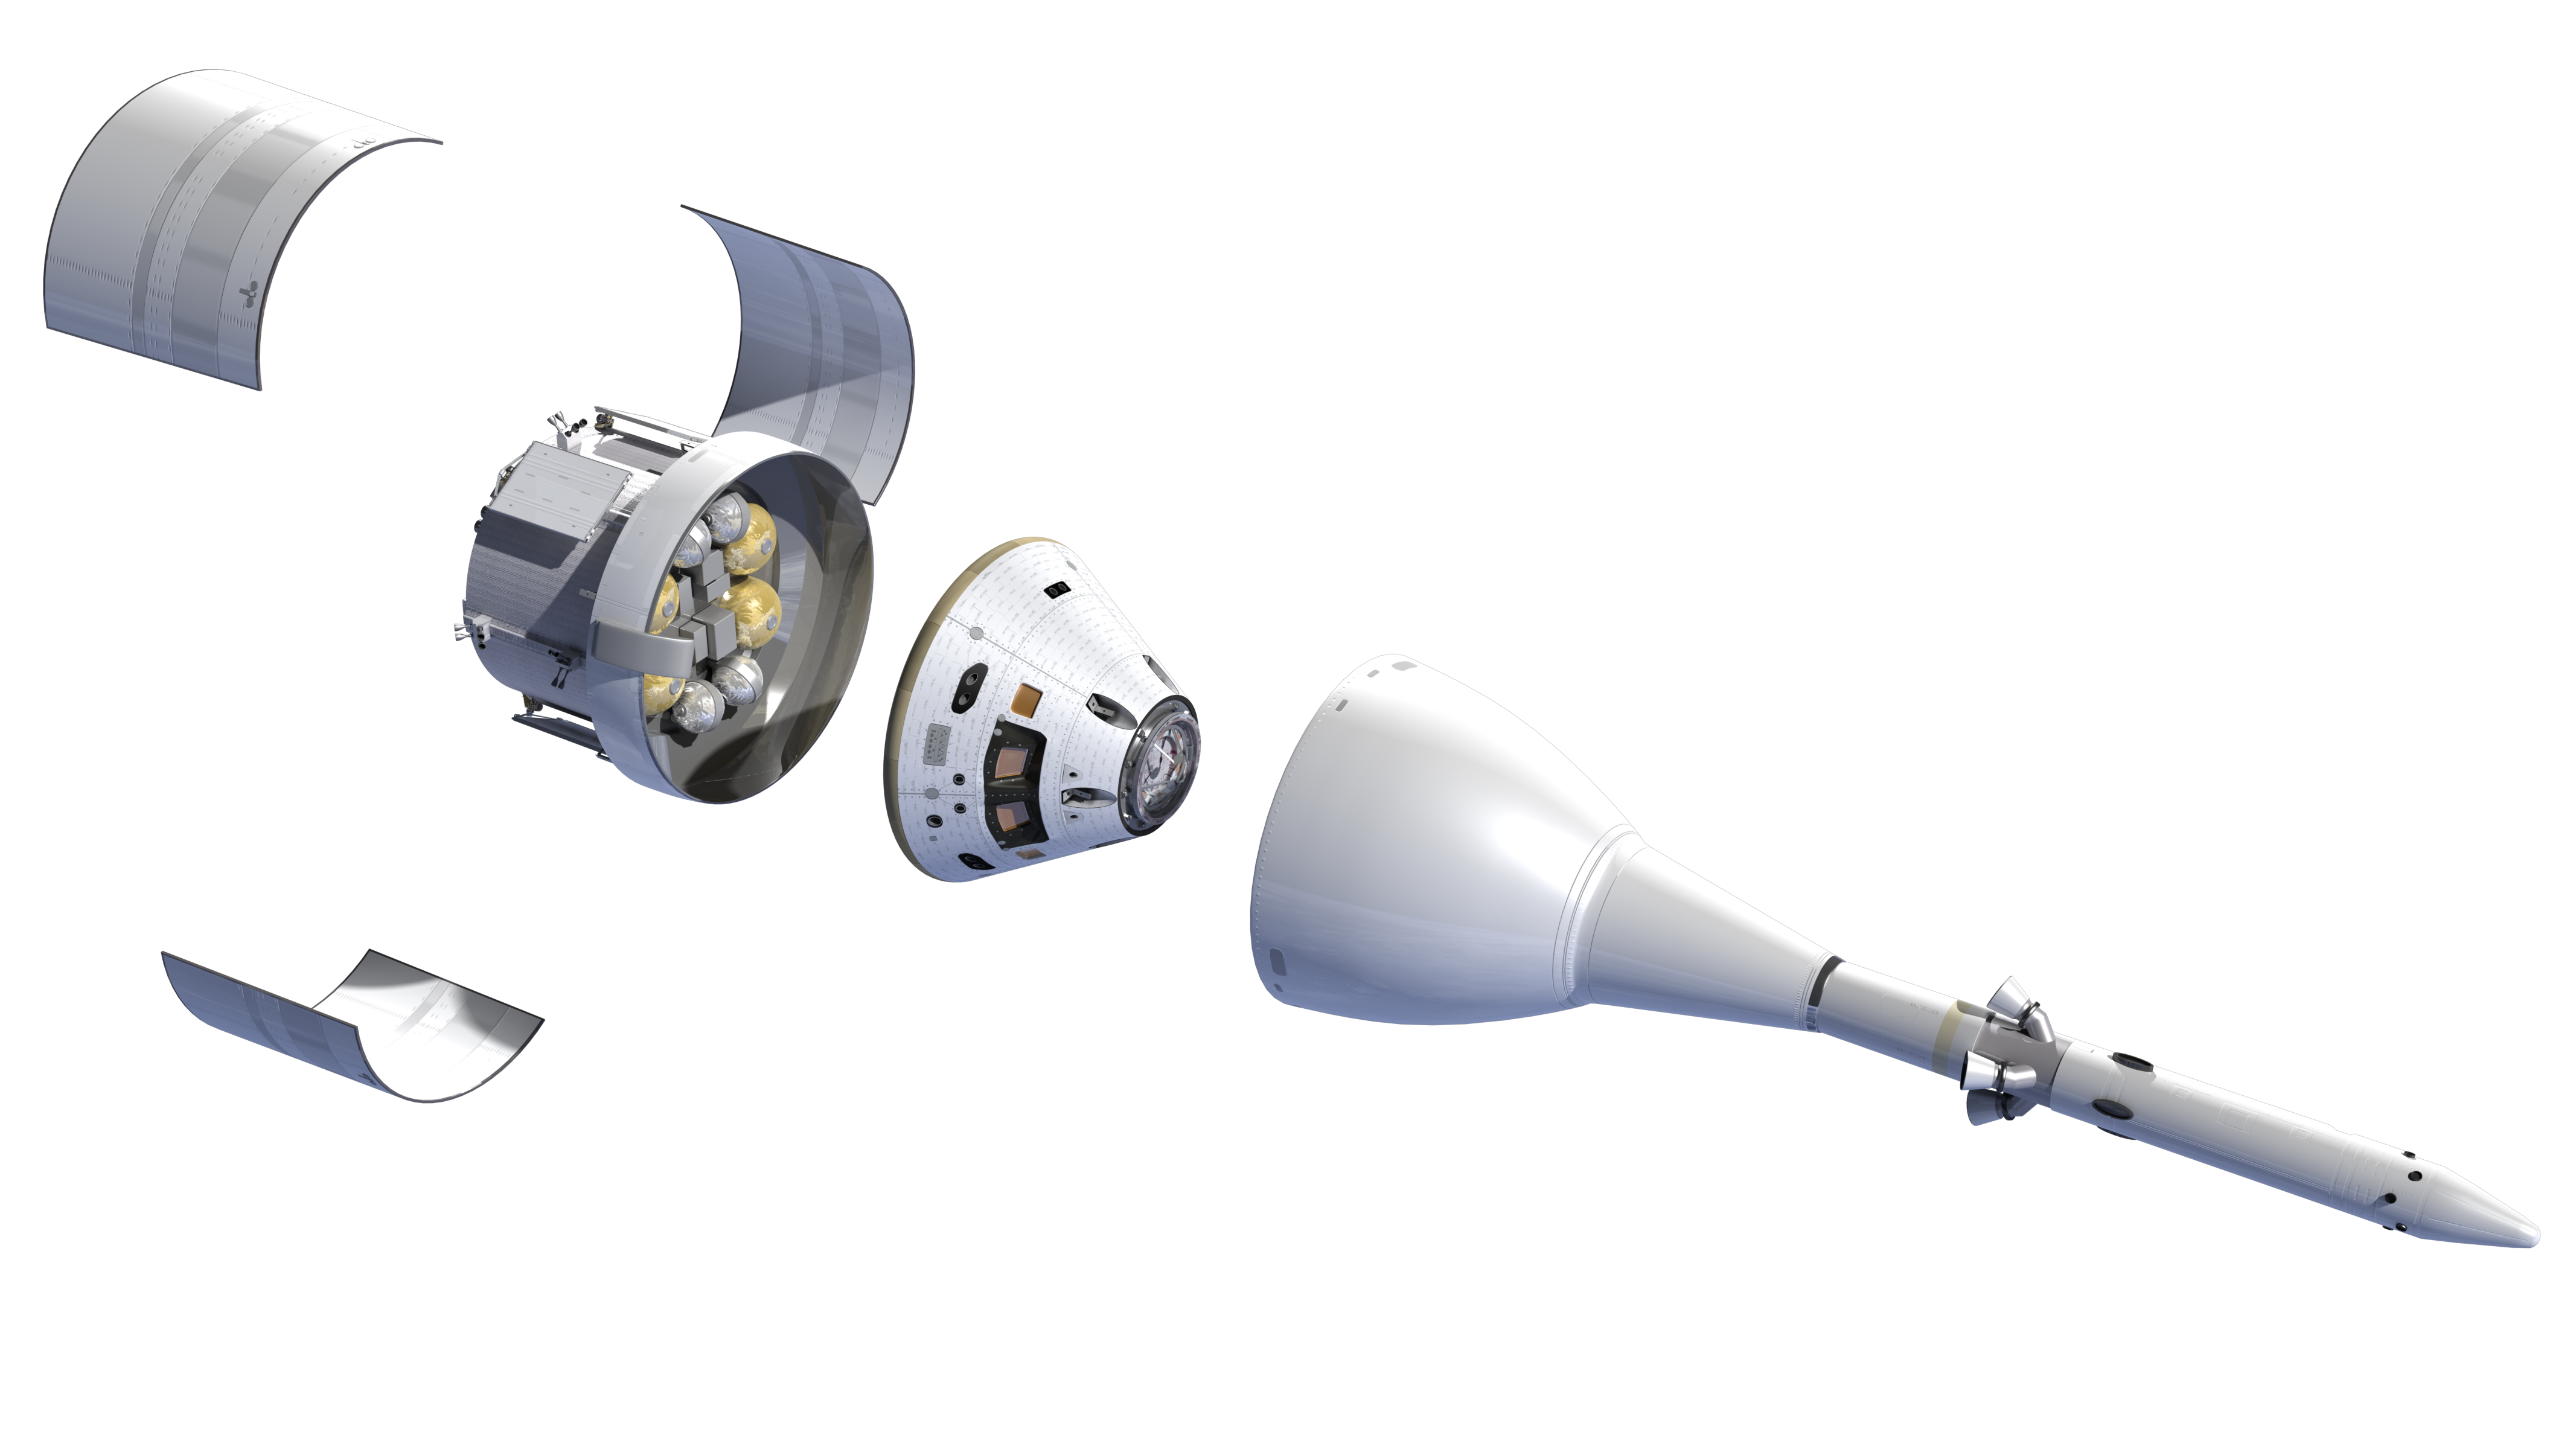 spacecraft drawing concept